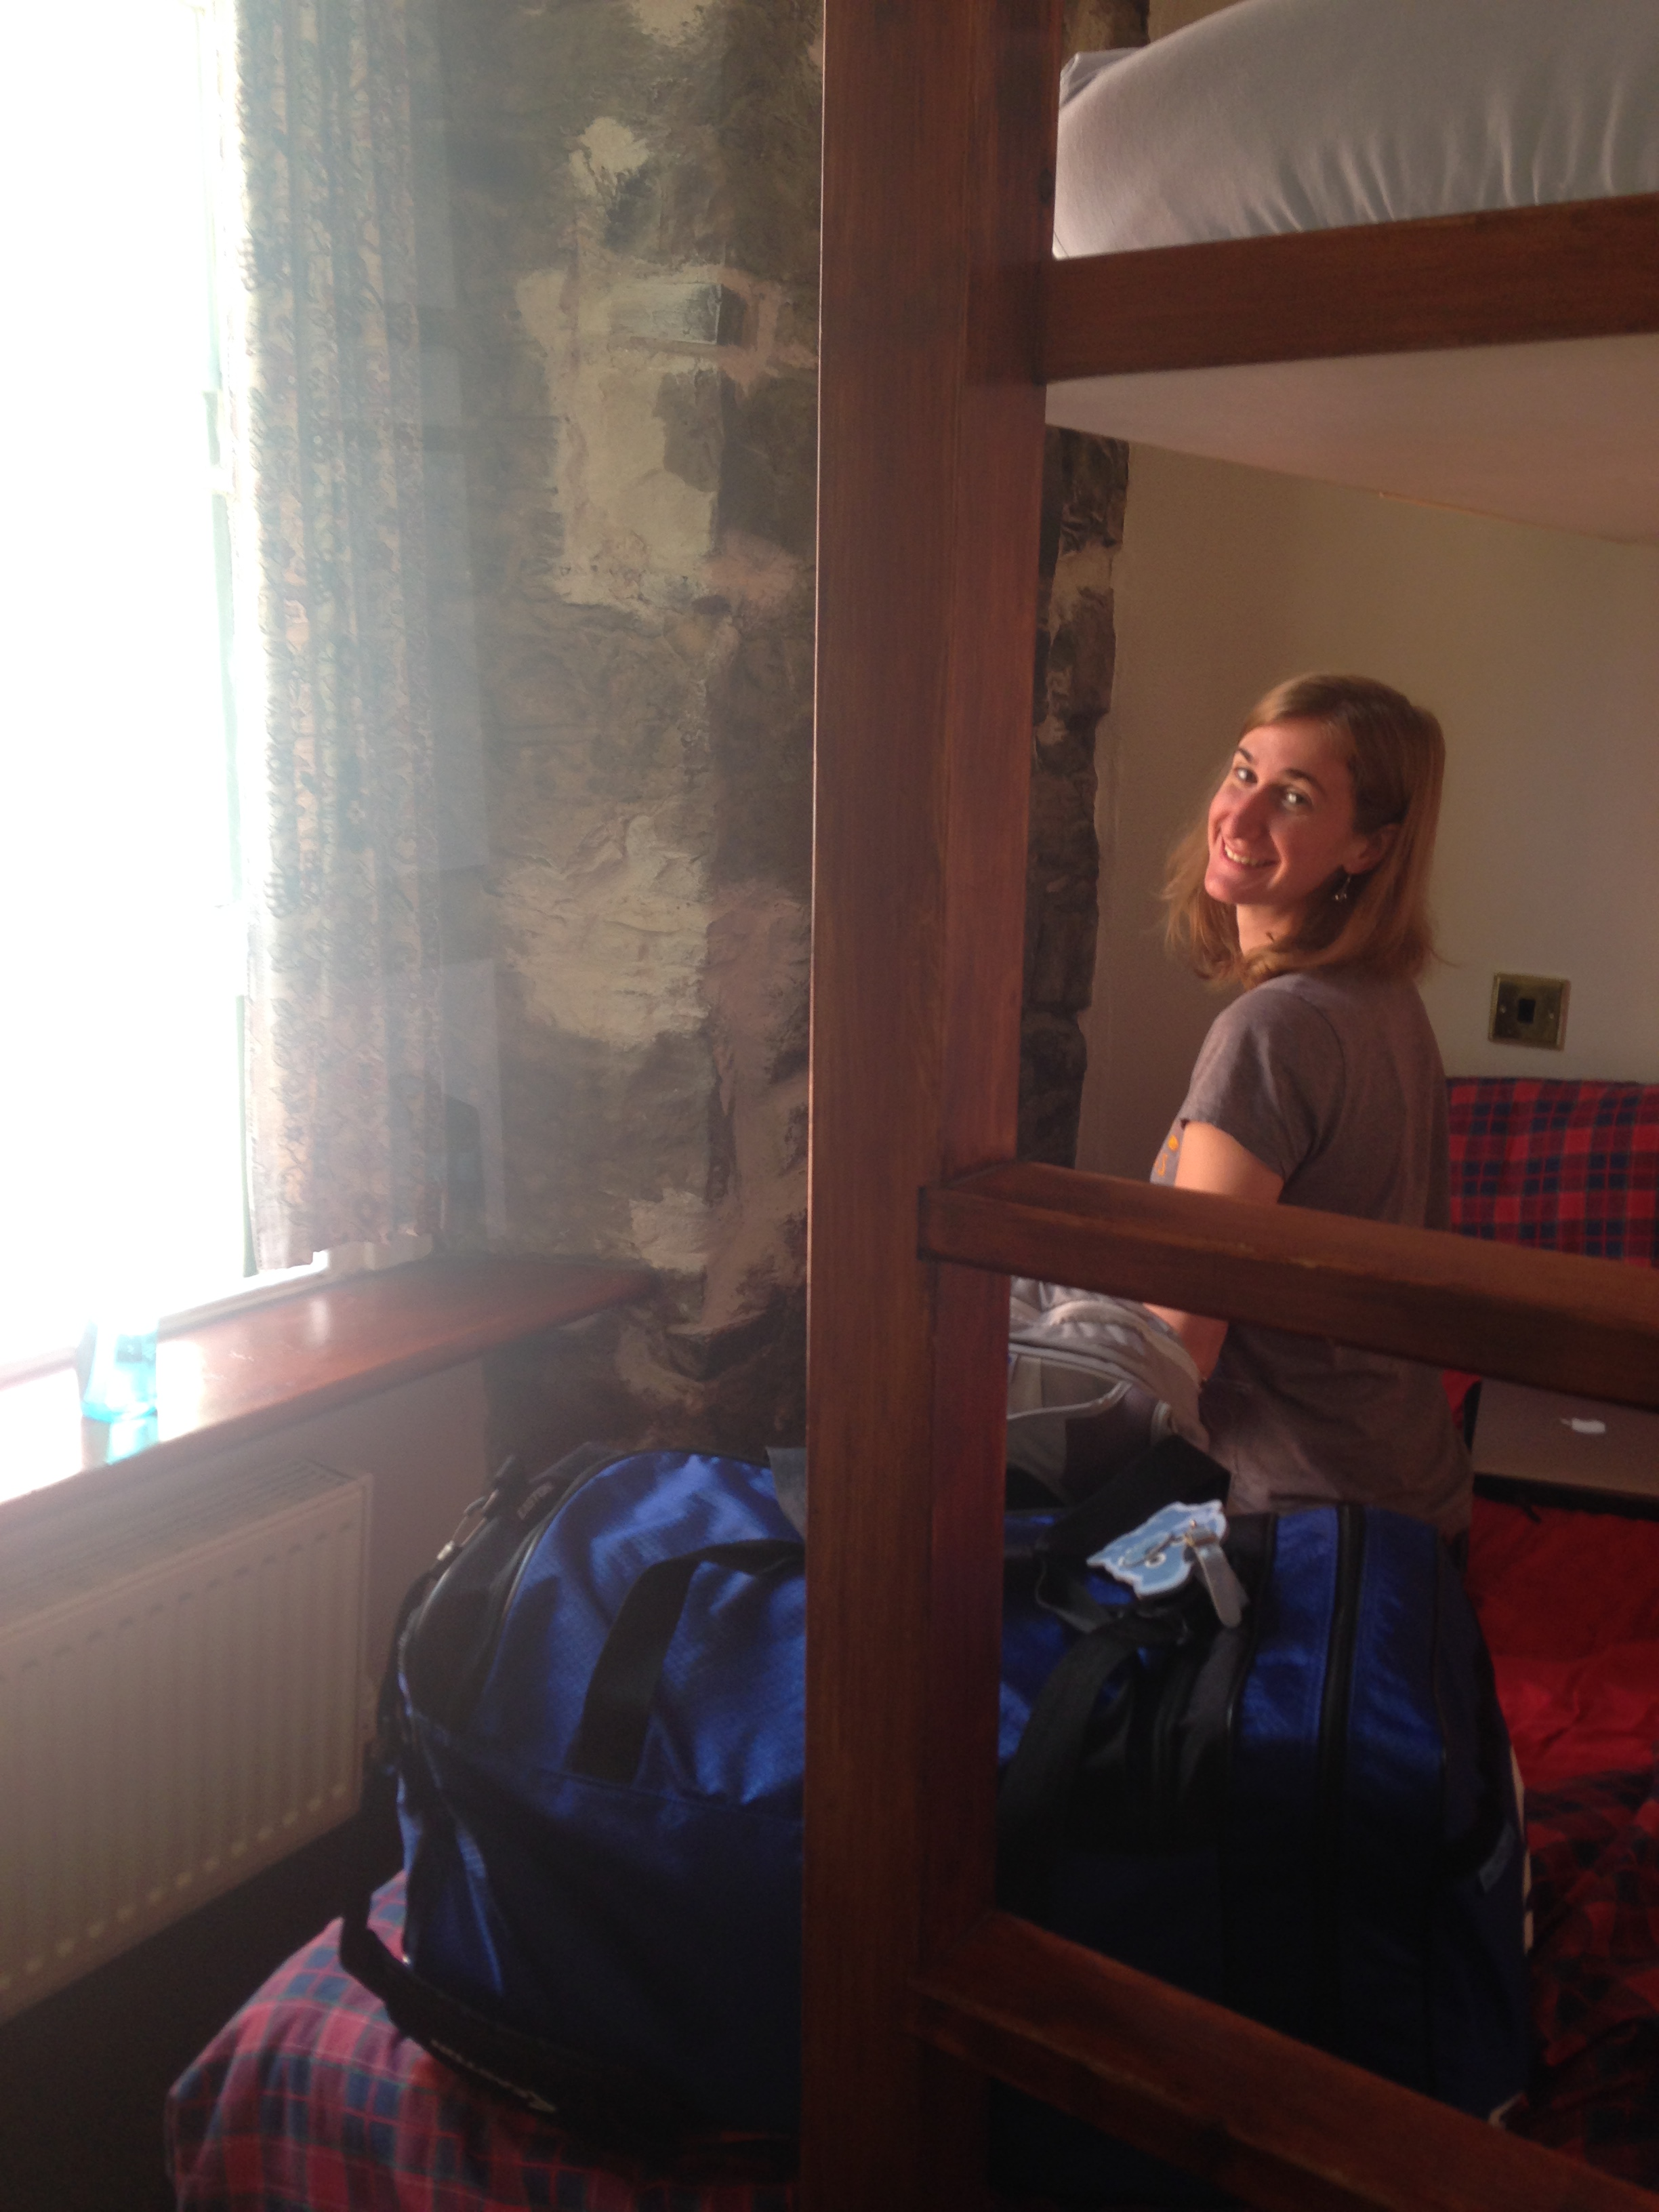 A picture of my friend Kate sitting on our bunk bed.